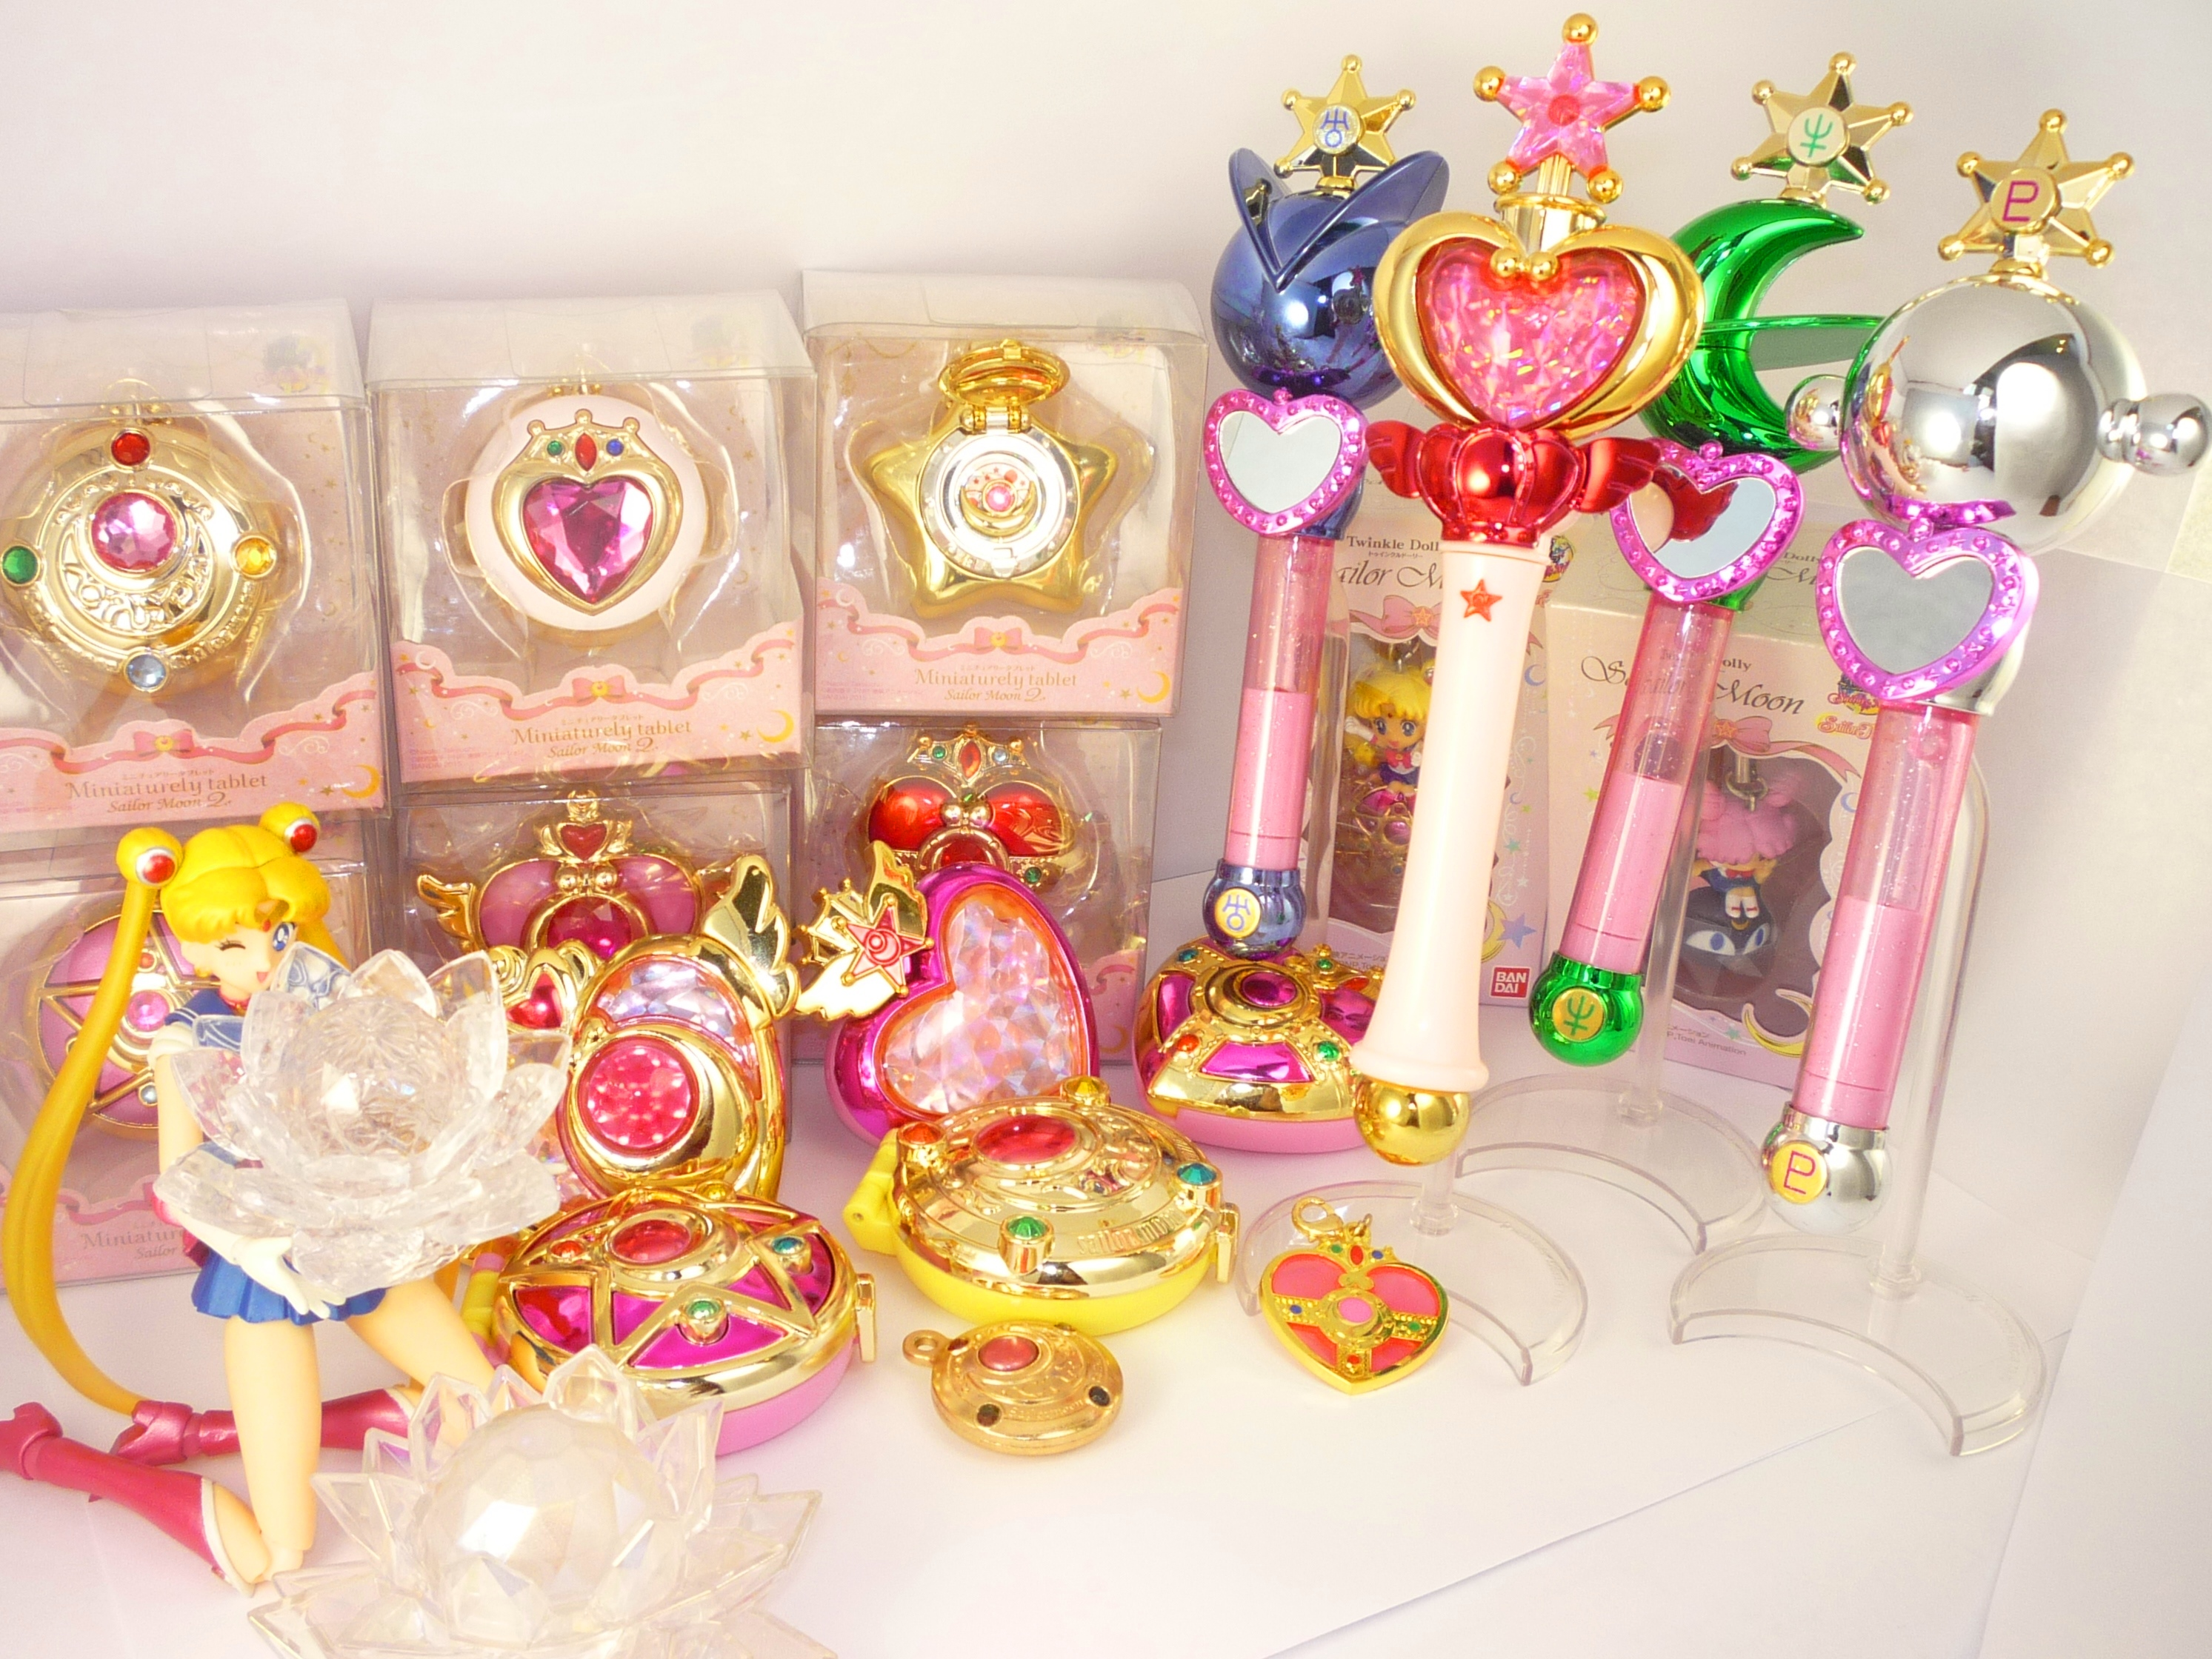 sailor_moon charm luna bandai compact chibiusa s.h.figuarts bishoujo_senshi_sailor_moon toei_animation takeuchi_naoko replica luna-p bishoujo_senshi_sailor_moon_supers candy_toy bishoujo_senshi_sailor_moon_r proplica bishoujo_senshi_sailor_moon_s twinkle_dolly_sailor_moon miniaturely_tablet_sailor_moon miniaturely_tablet_sailor_moon_2 bishoujo_senshi_sailor_moon_henshin_compact_mirror bishoujo_senshi_sailor_moon_stick_&_rod_3 bishoujo_senshi_sailor_moon_die-cast_charm bishoujo_senshi_sailor_moon_stained_charm